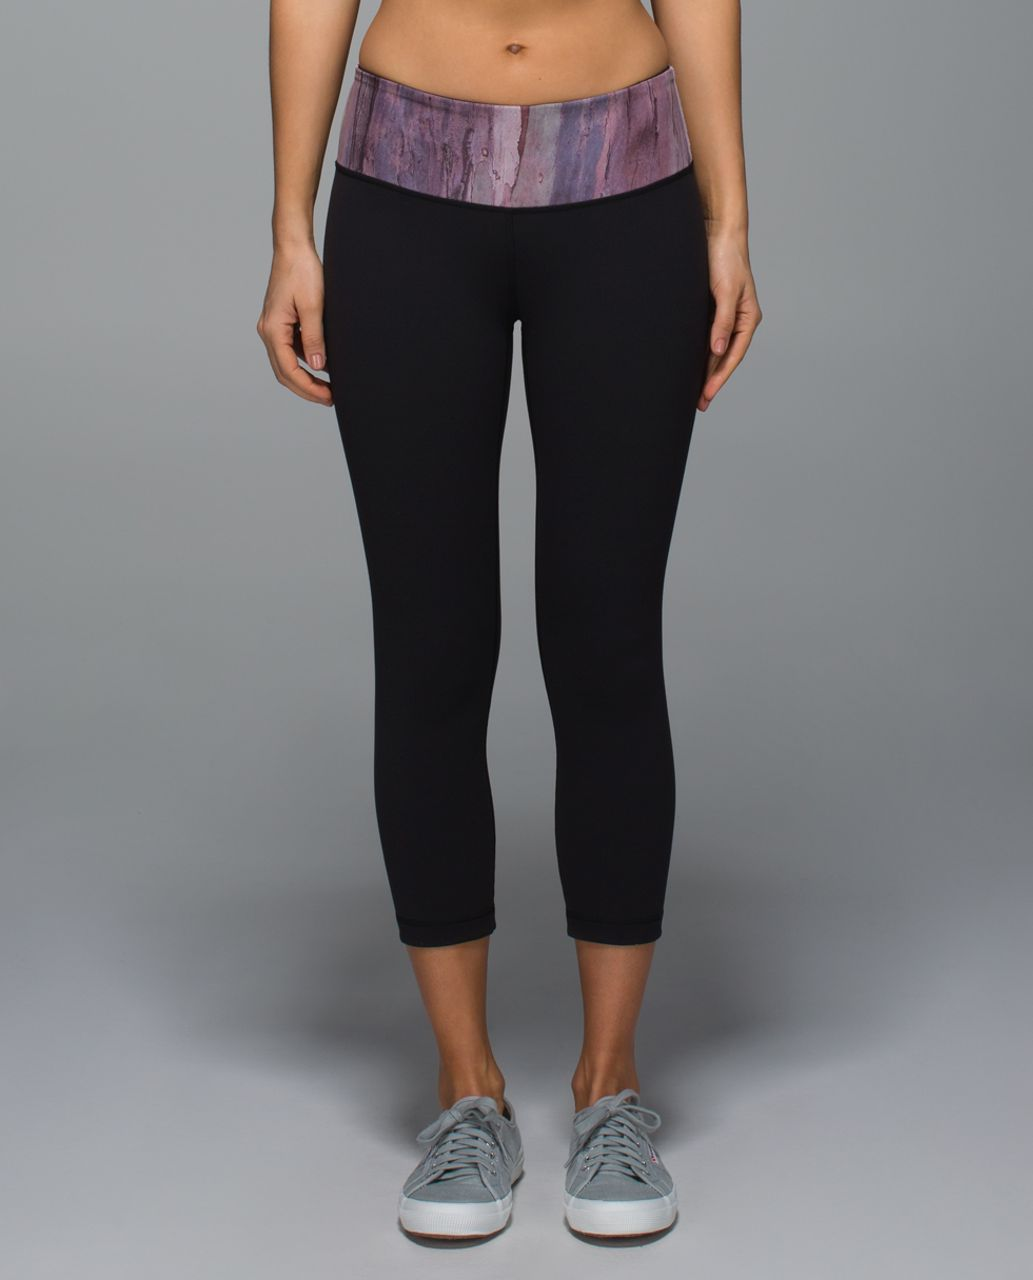 Lululemon Wunder Under Crop II *Full-On Luon - Black / Mini Hazy Horizon Storm Mauve